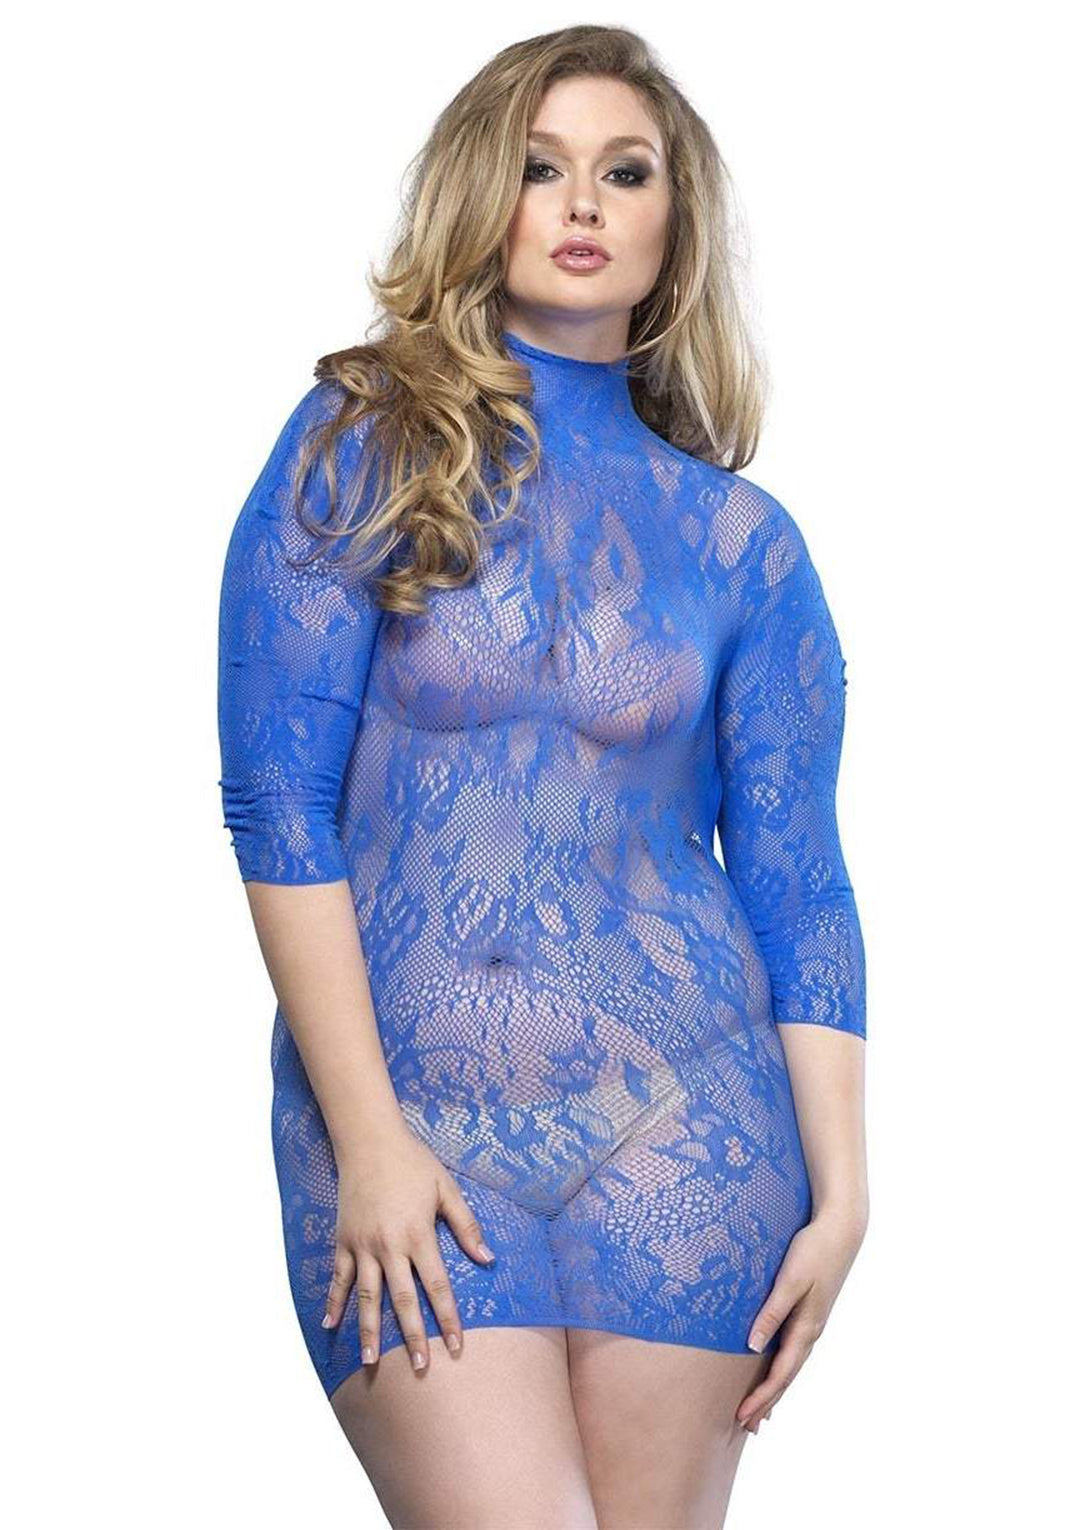 Blue Floral Lace Mini Dress Plus